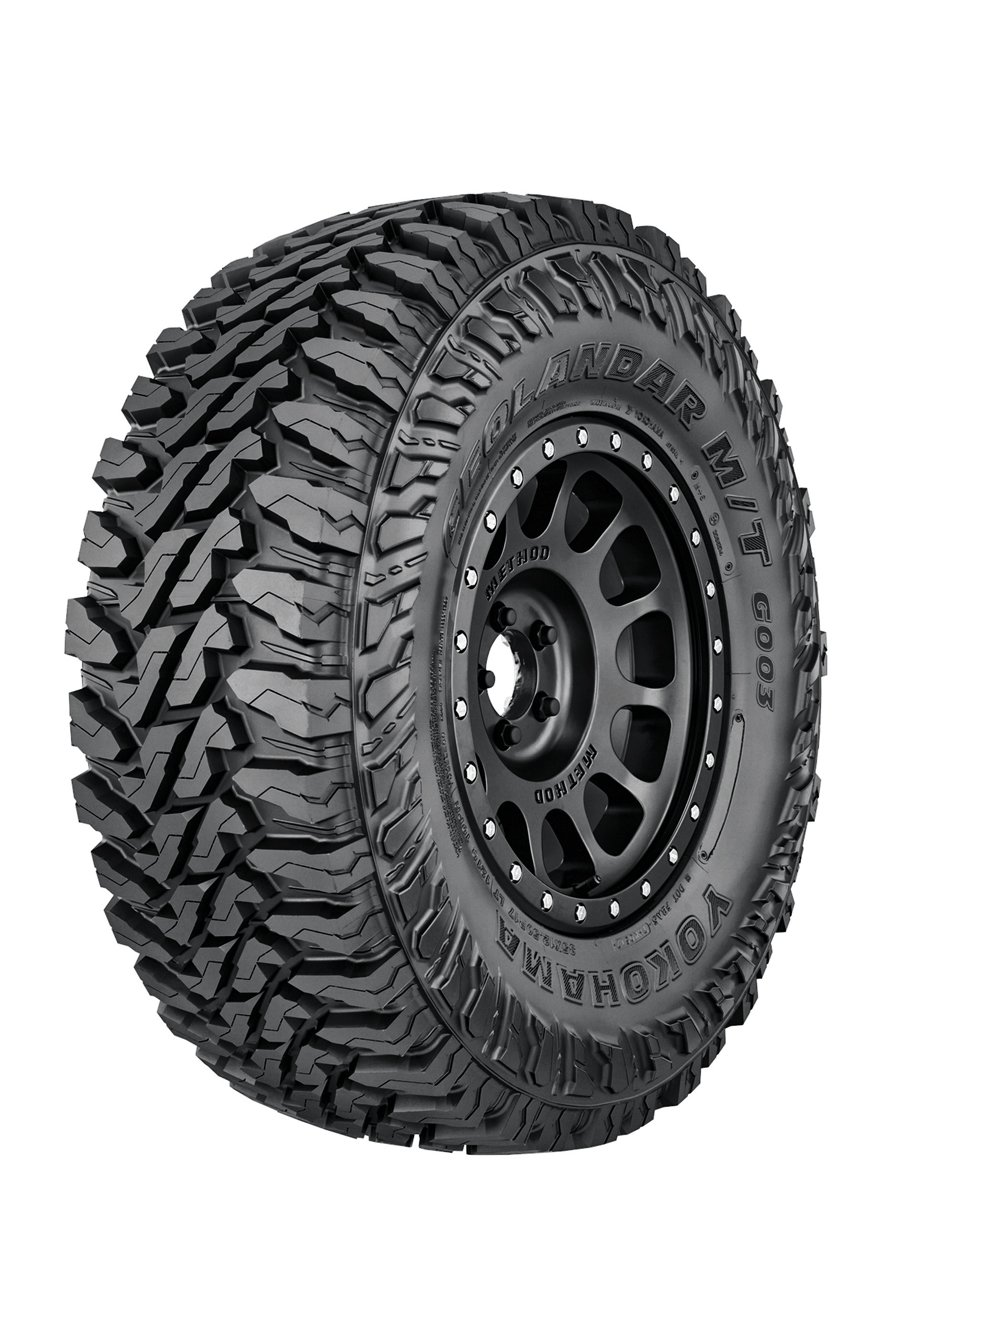 Nitto Mud Grappler Off-Road Tire